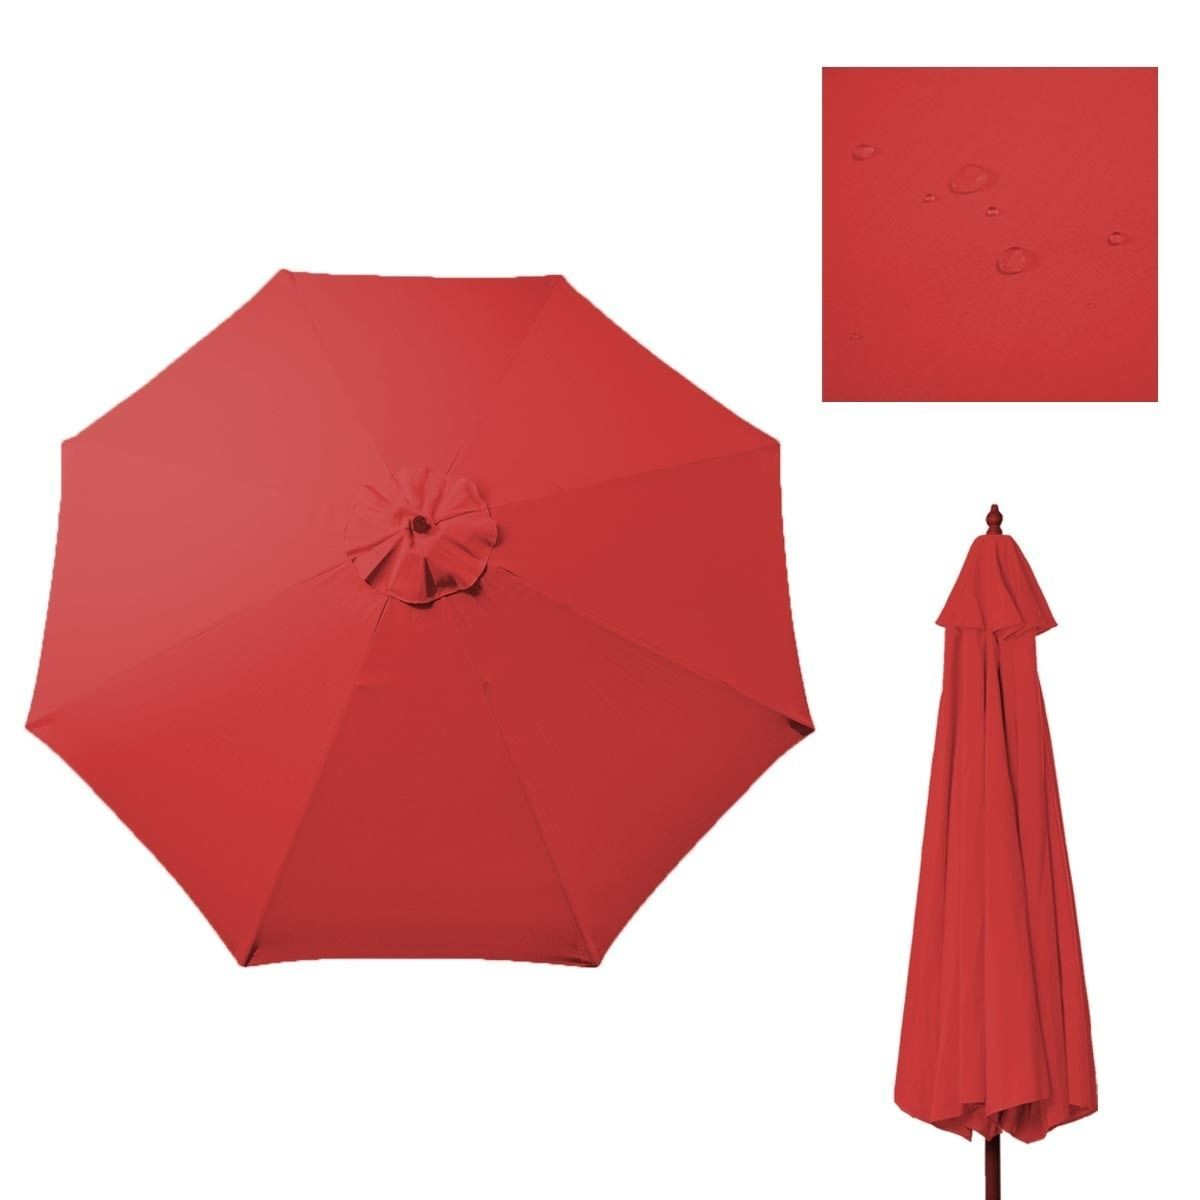 New Replacement Umbrella Canopy for 9FT 8 Ribs Color Red (CANOPY ONLY)  sc 1 st  Walmart : umbrella canopy replacement - memphite.com